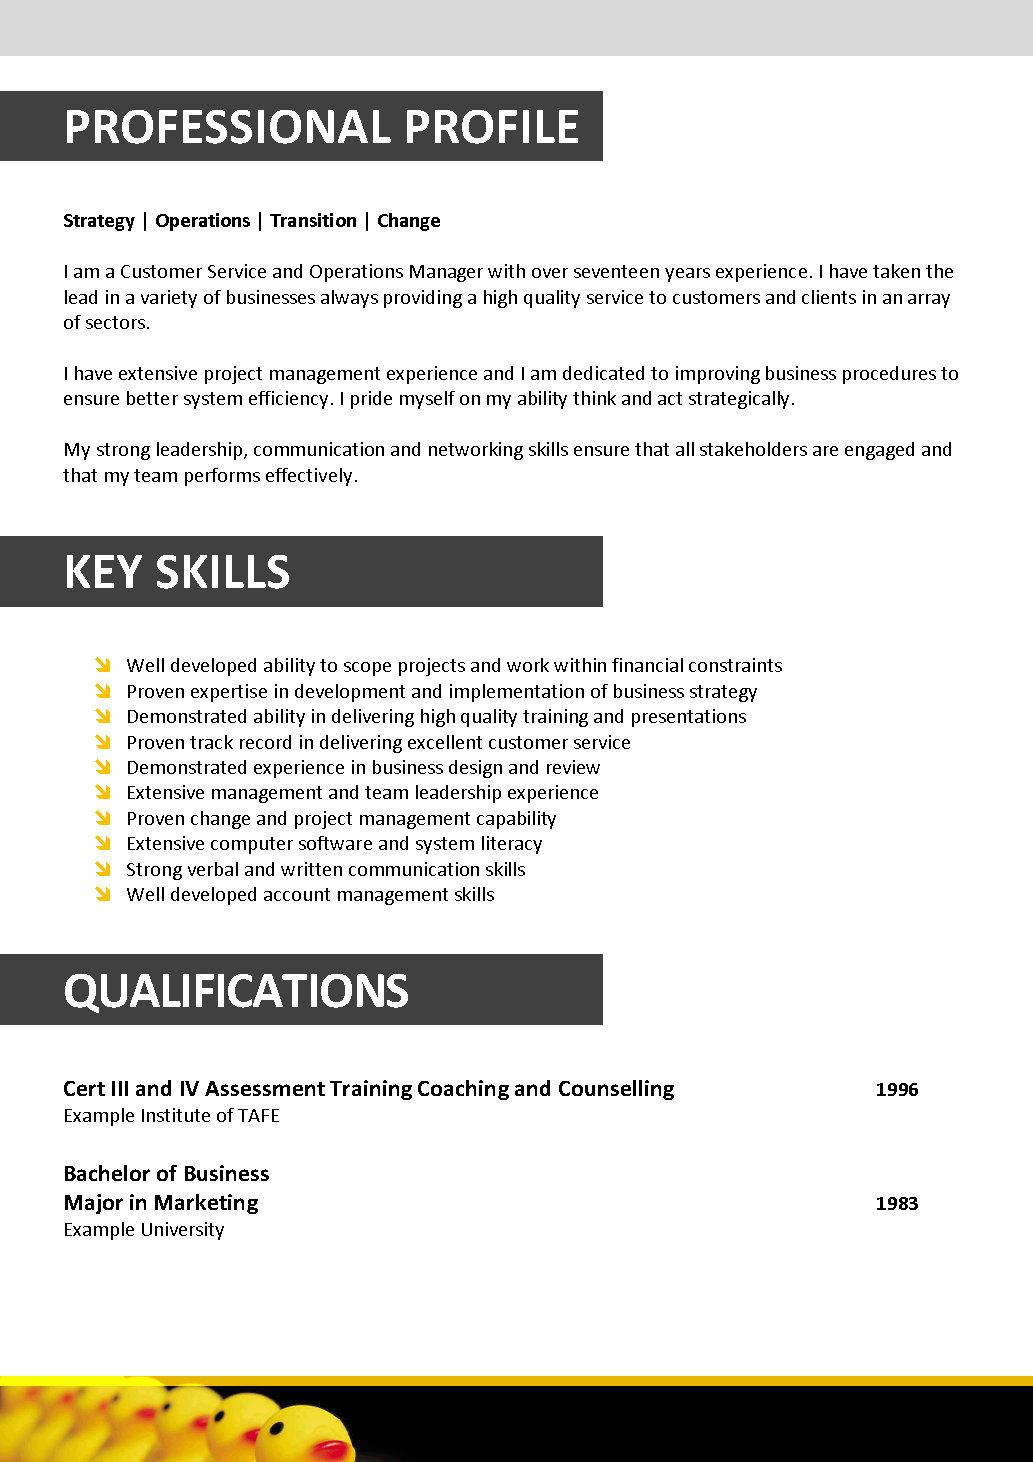 resume profile examples child care resume builder resume profile examples child care child care provider resume samples livecareer we can help professional